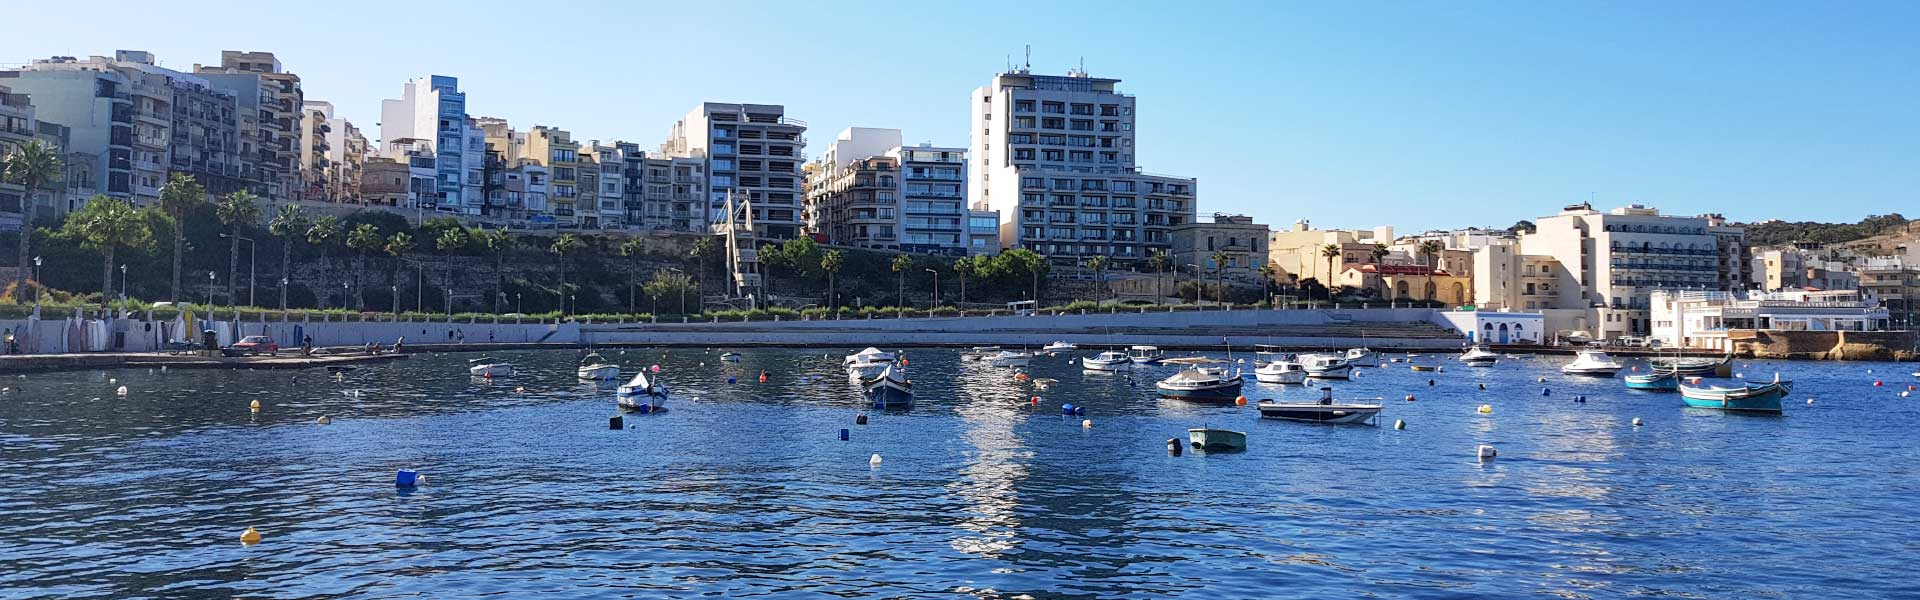 Where to stay in Malta - Best Malta Hotels